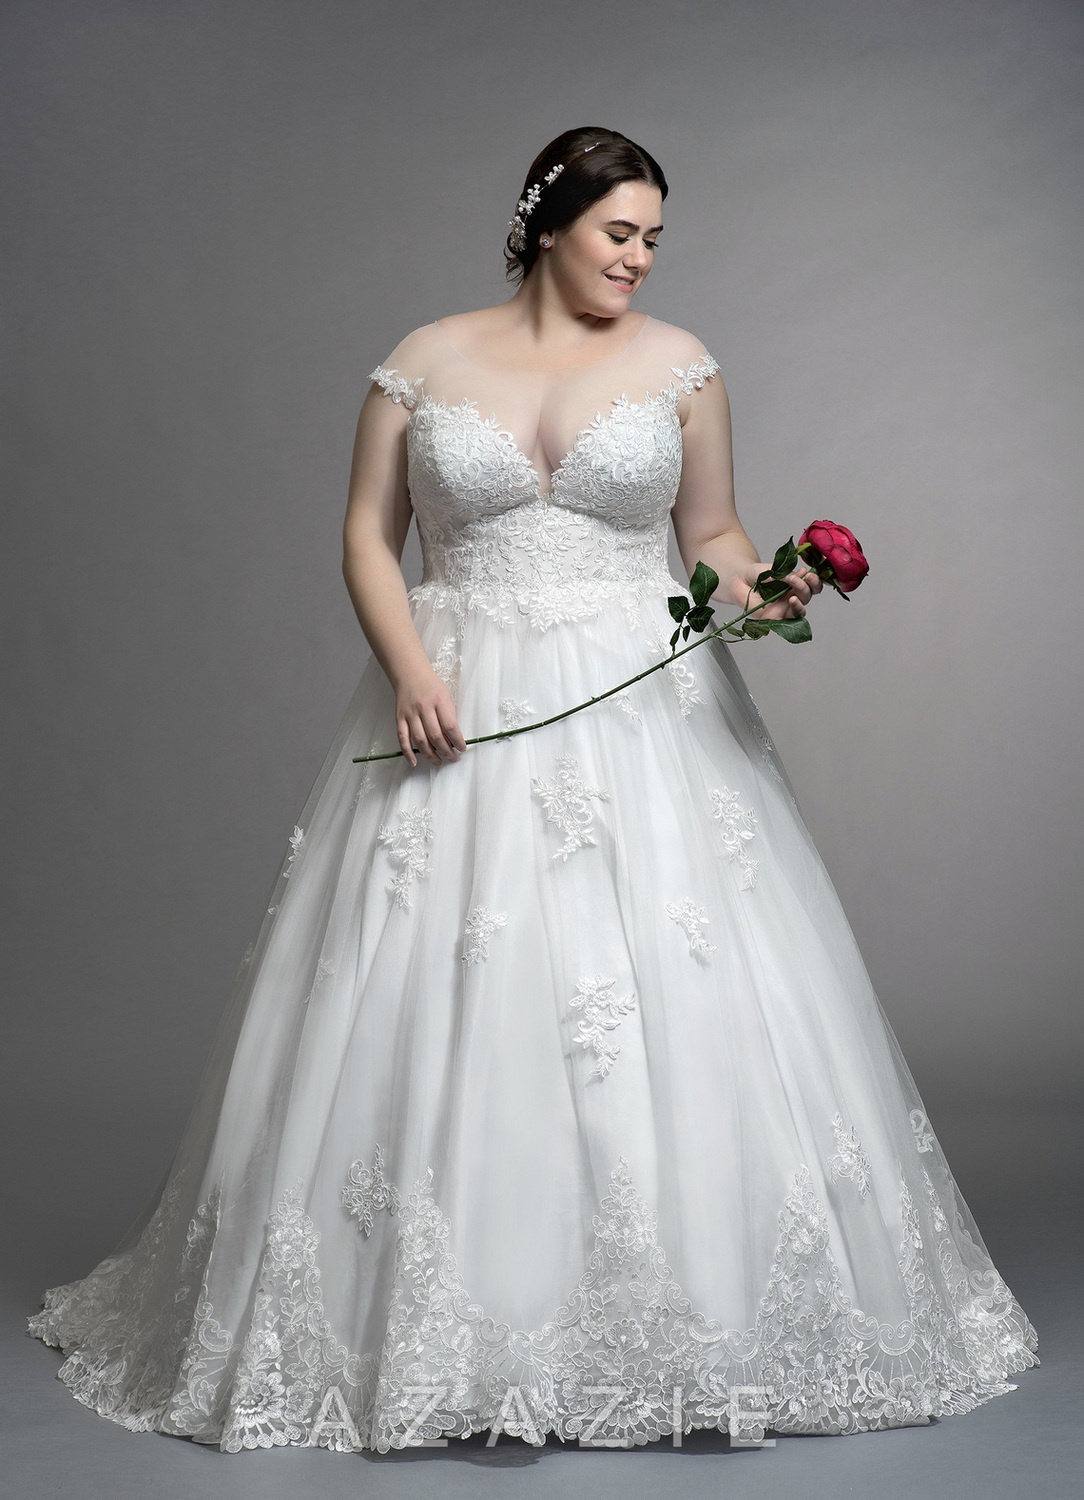 Angelique Plus Size Wedding Dress at Azazie